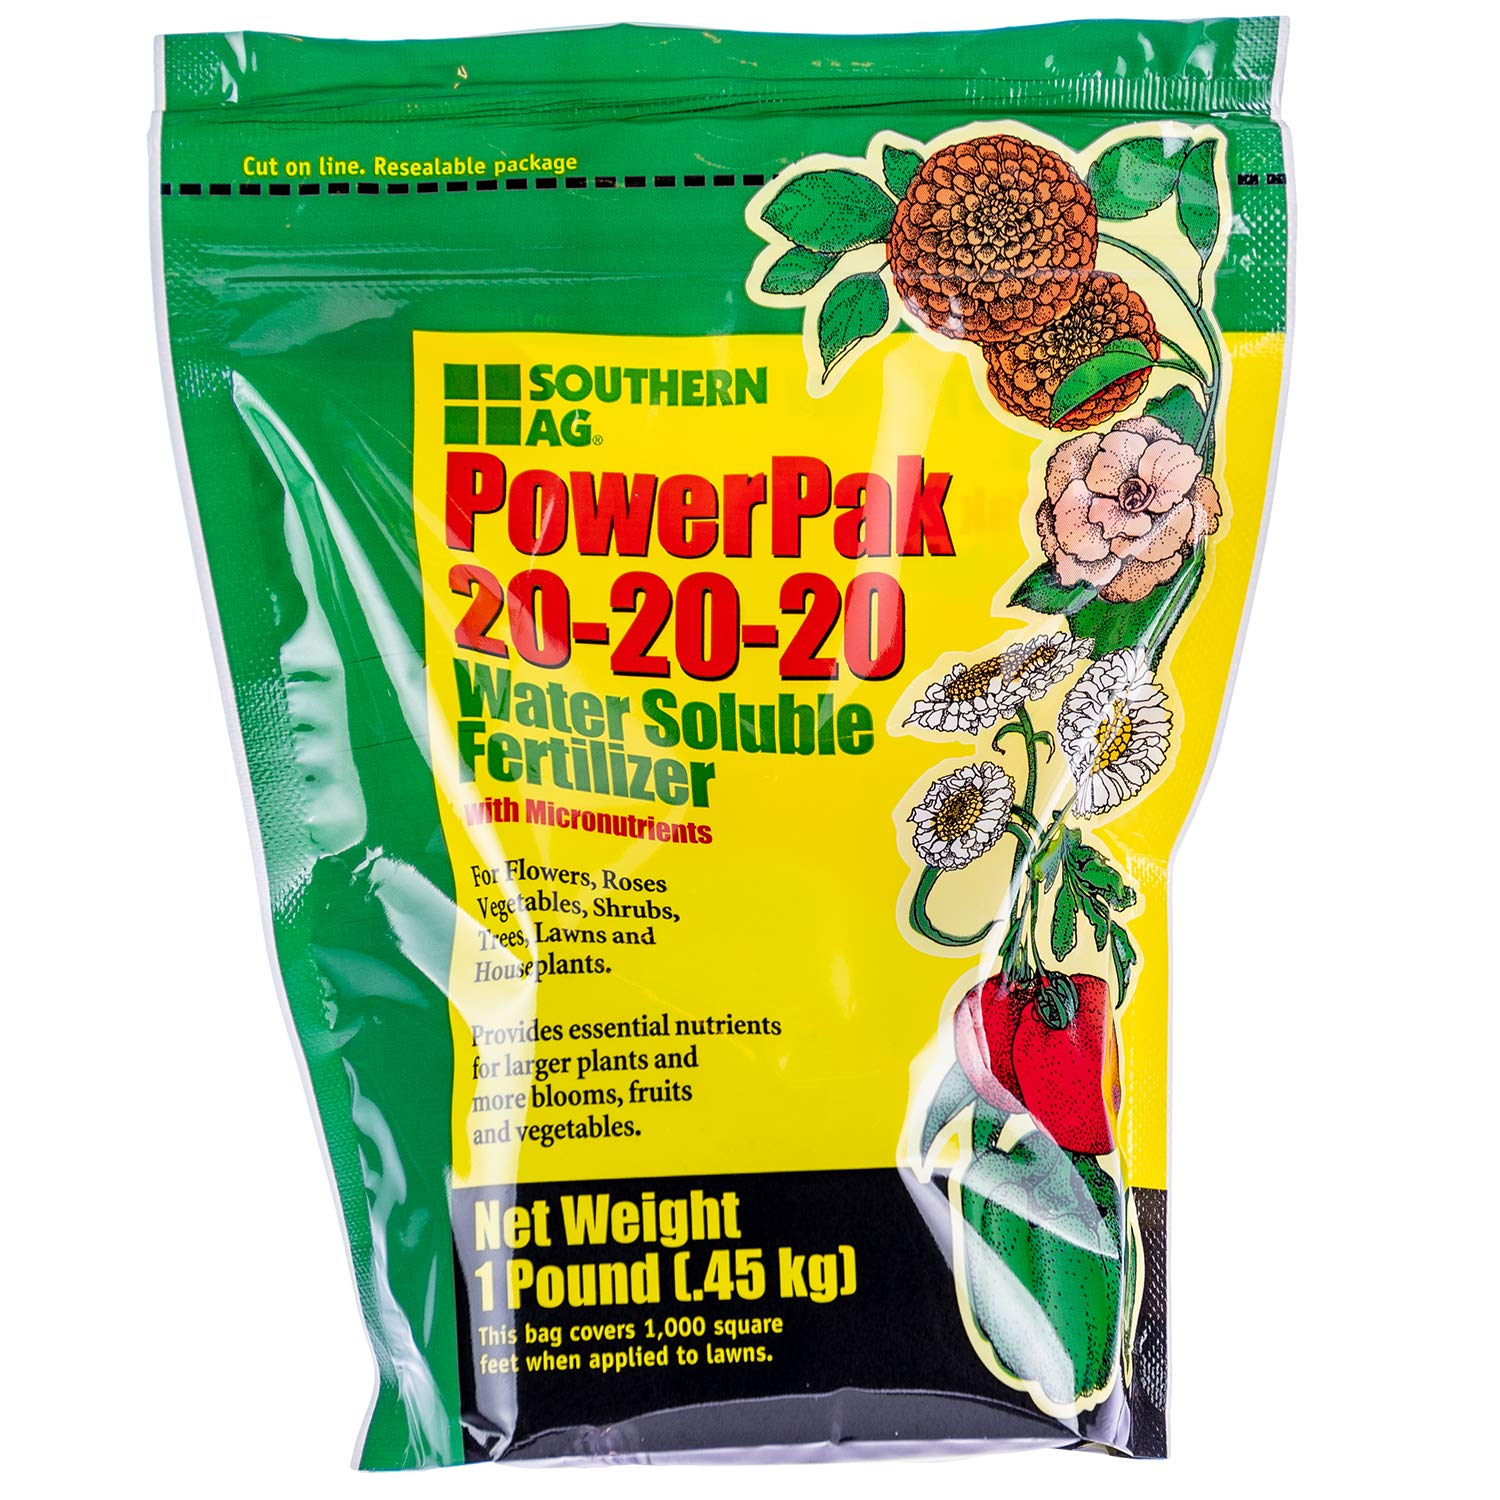 Southern Ag PowerPak 20-20-20Water Soluble Fertilizer w/micronutrients, 1lb bag